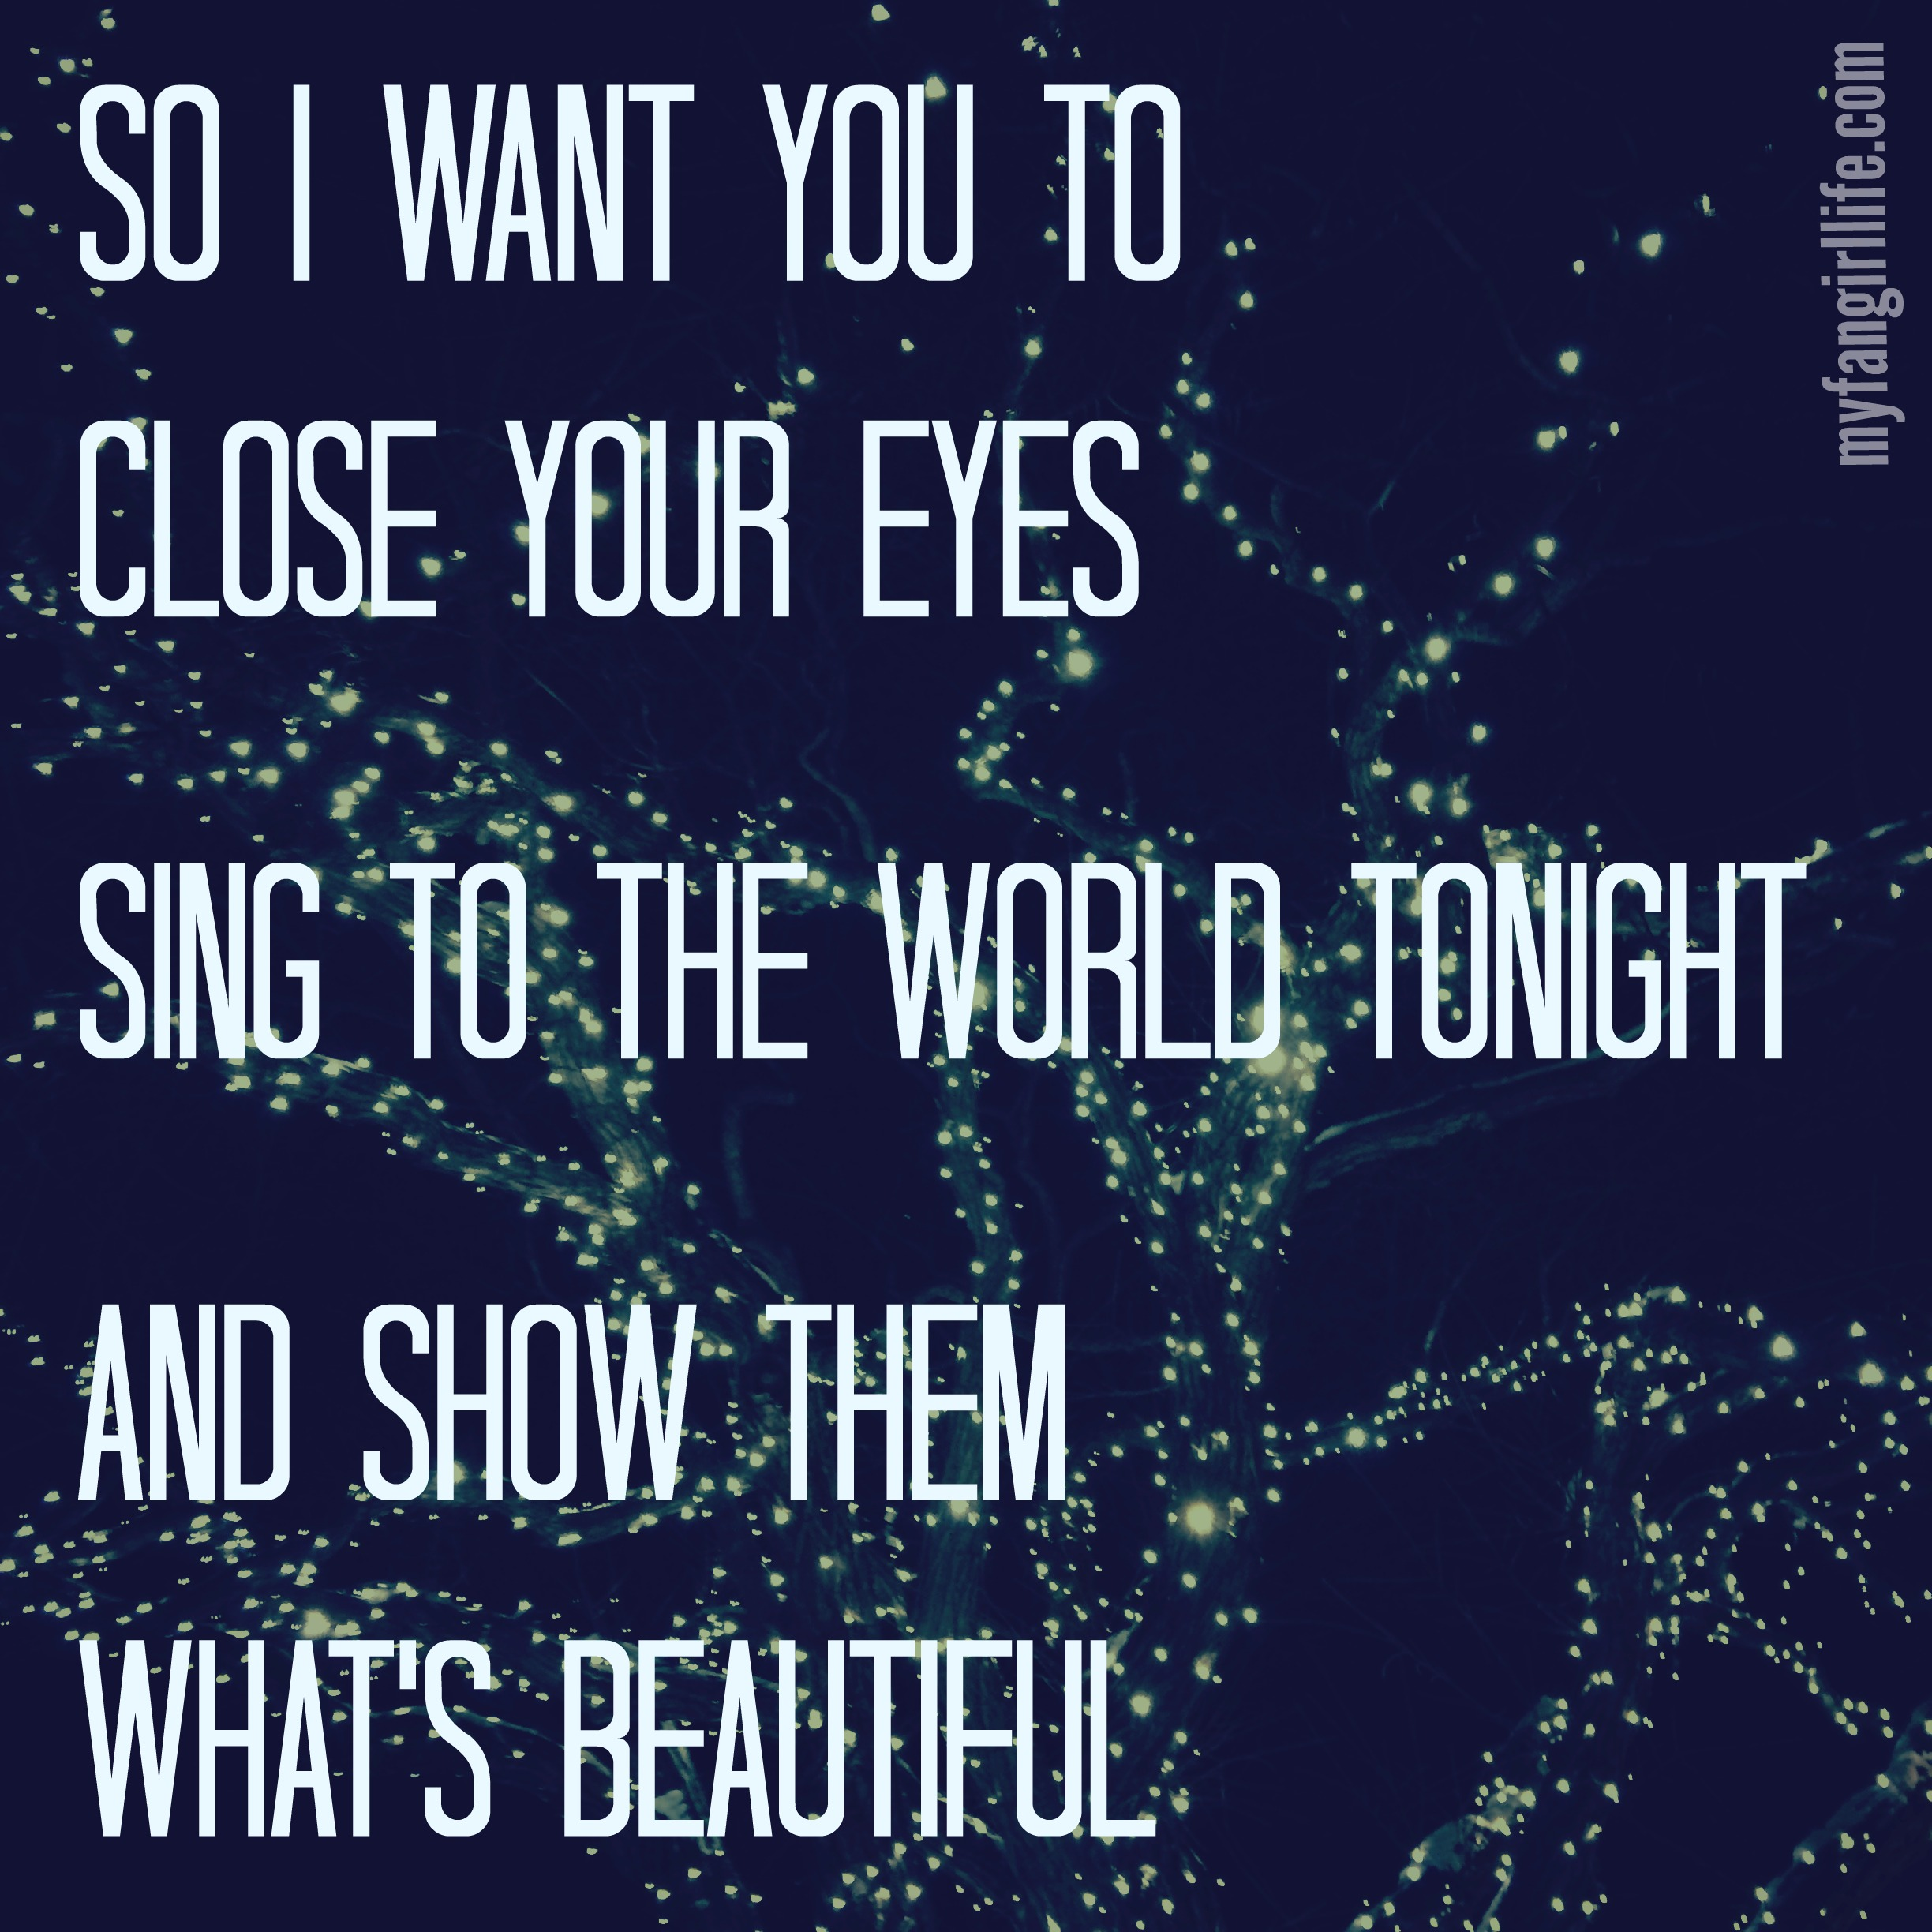 Michael Bublé - Close Your Eyes Lyrics | Musixmatch